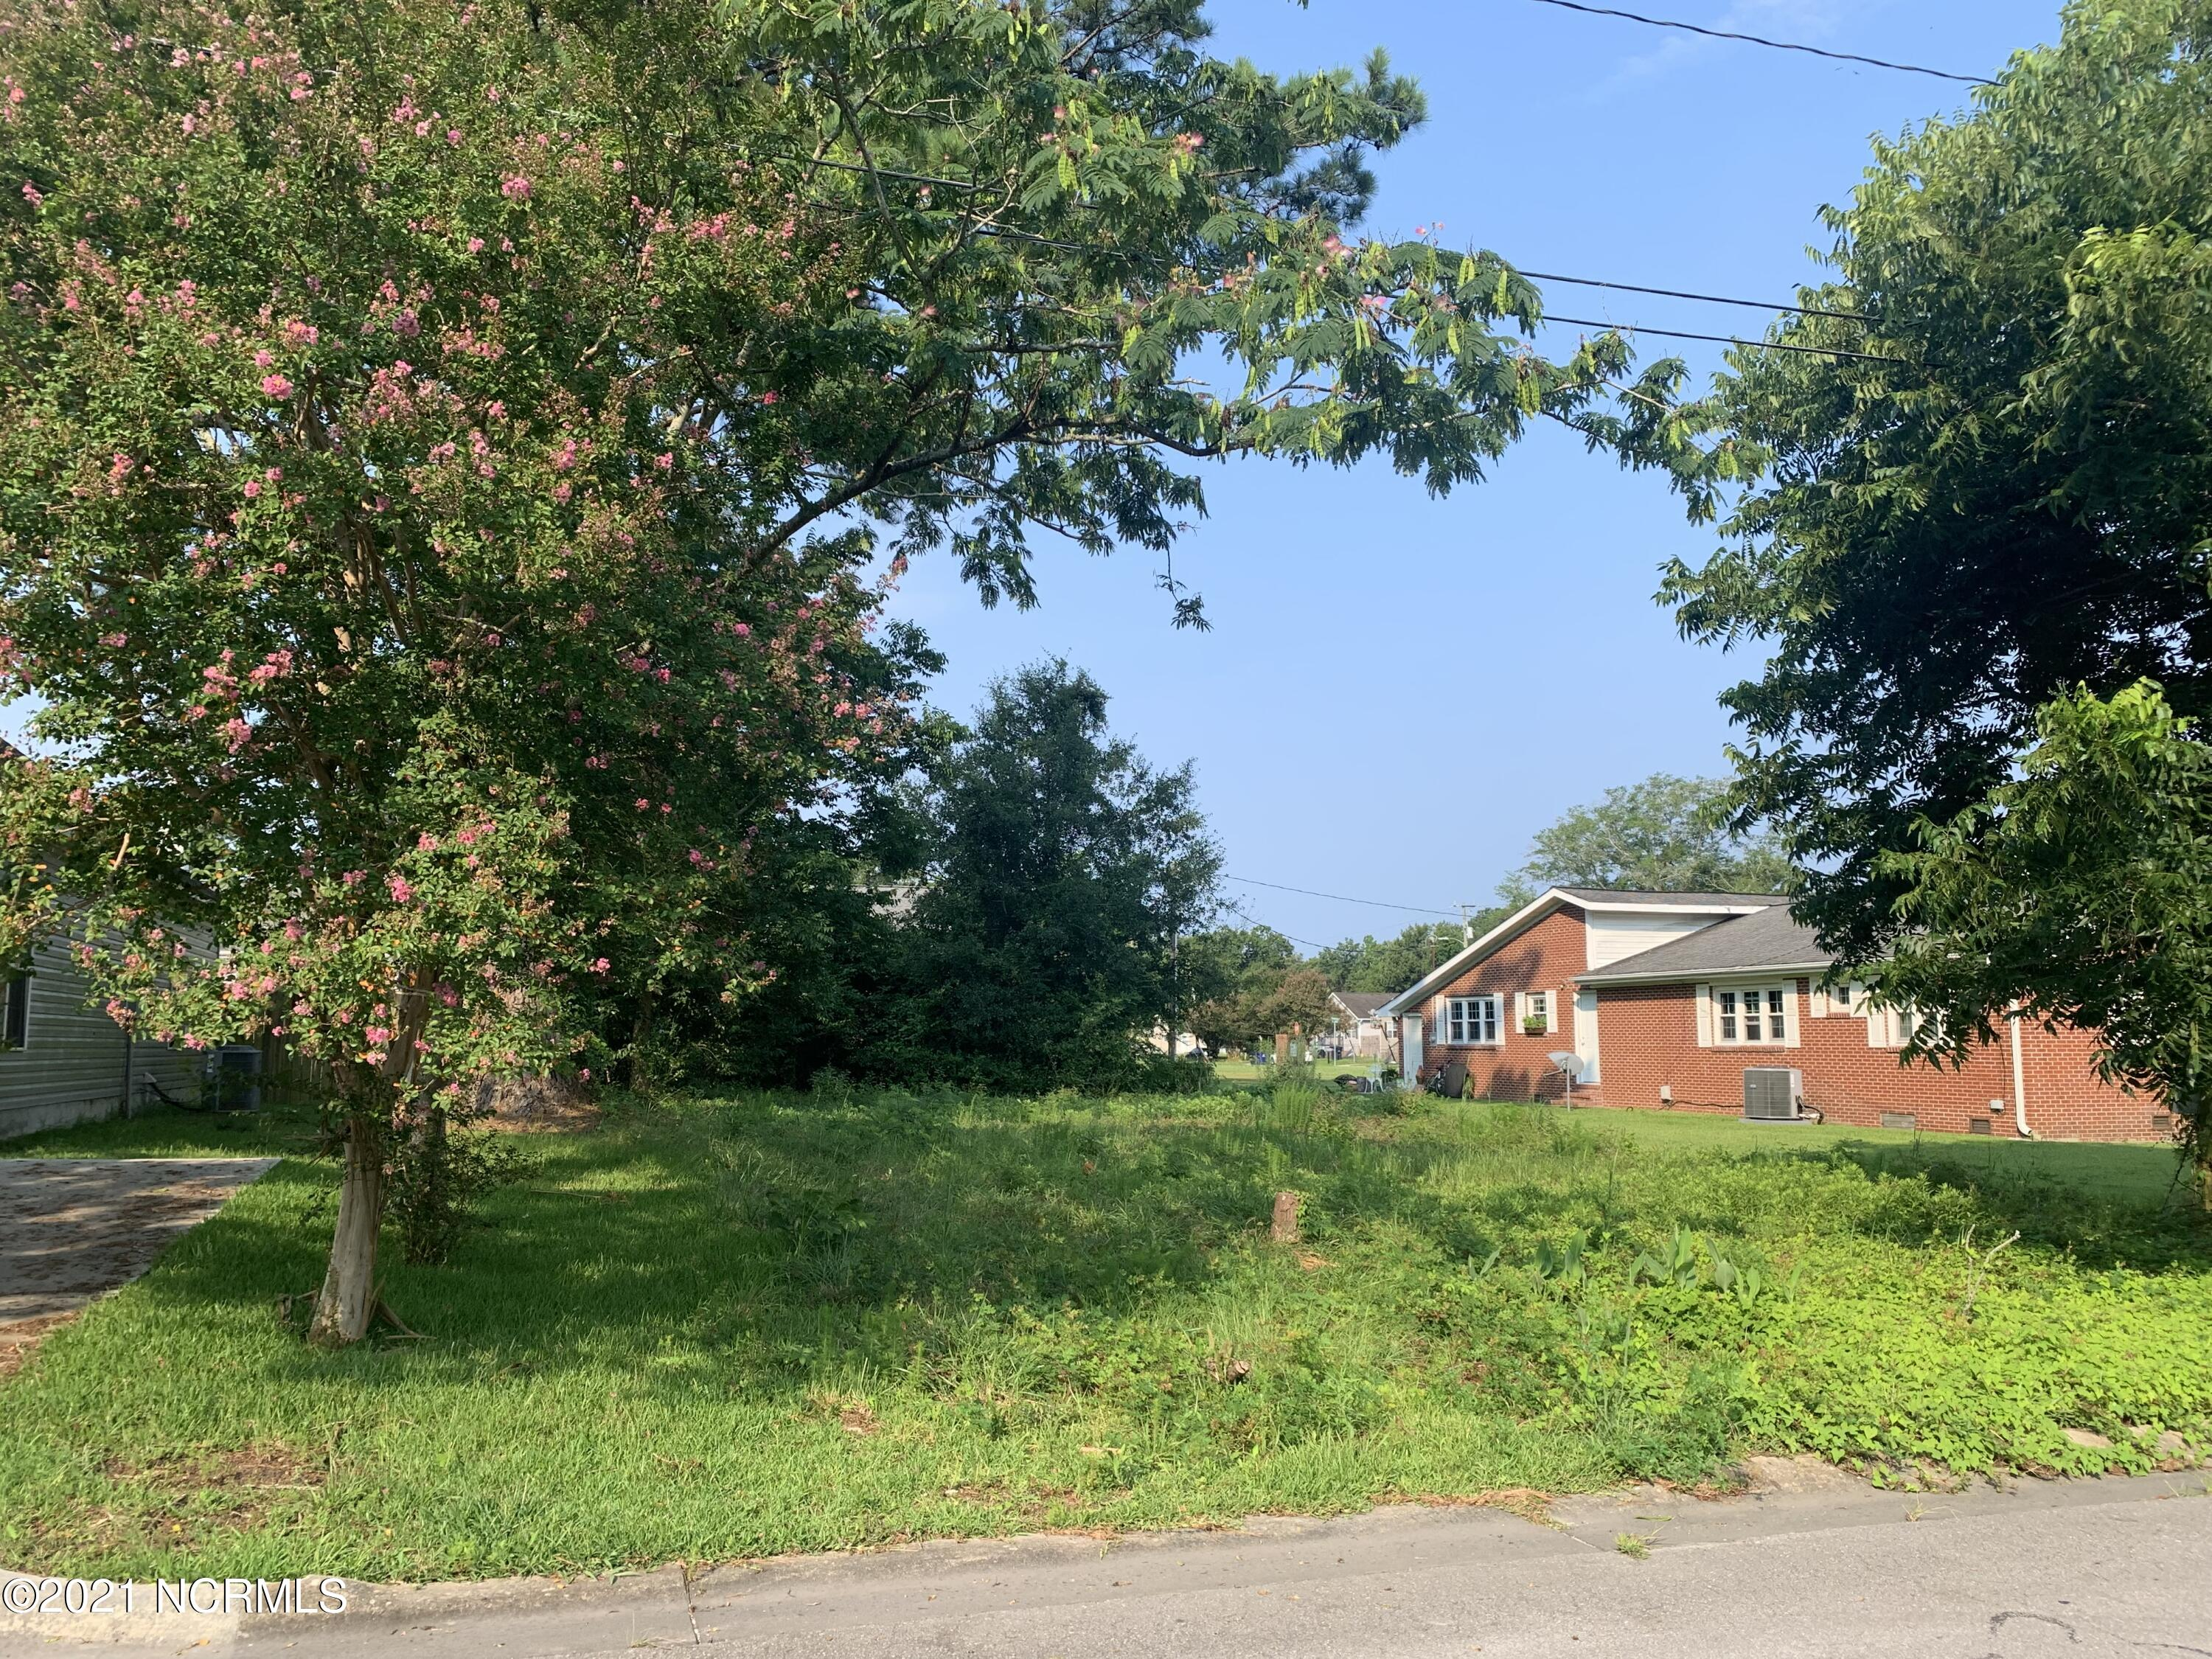 One of the few great buildable, cleared lot in Jacksonville city limits. Build your dream home with city water and sewer access. Lot is located in Sabiston Heights neighborhood. Enjoy convenient access to downtown, Camp Lejuene, shopping center, restaurants, parks and more!!!